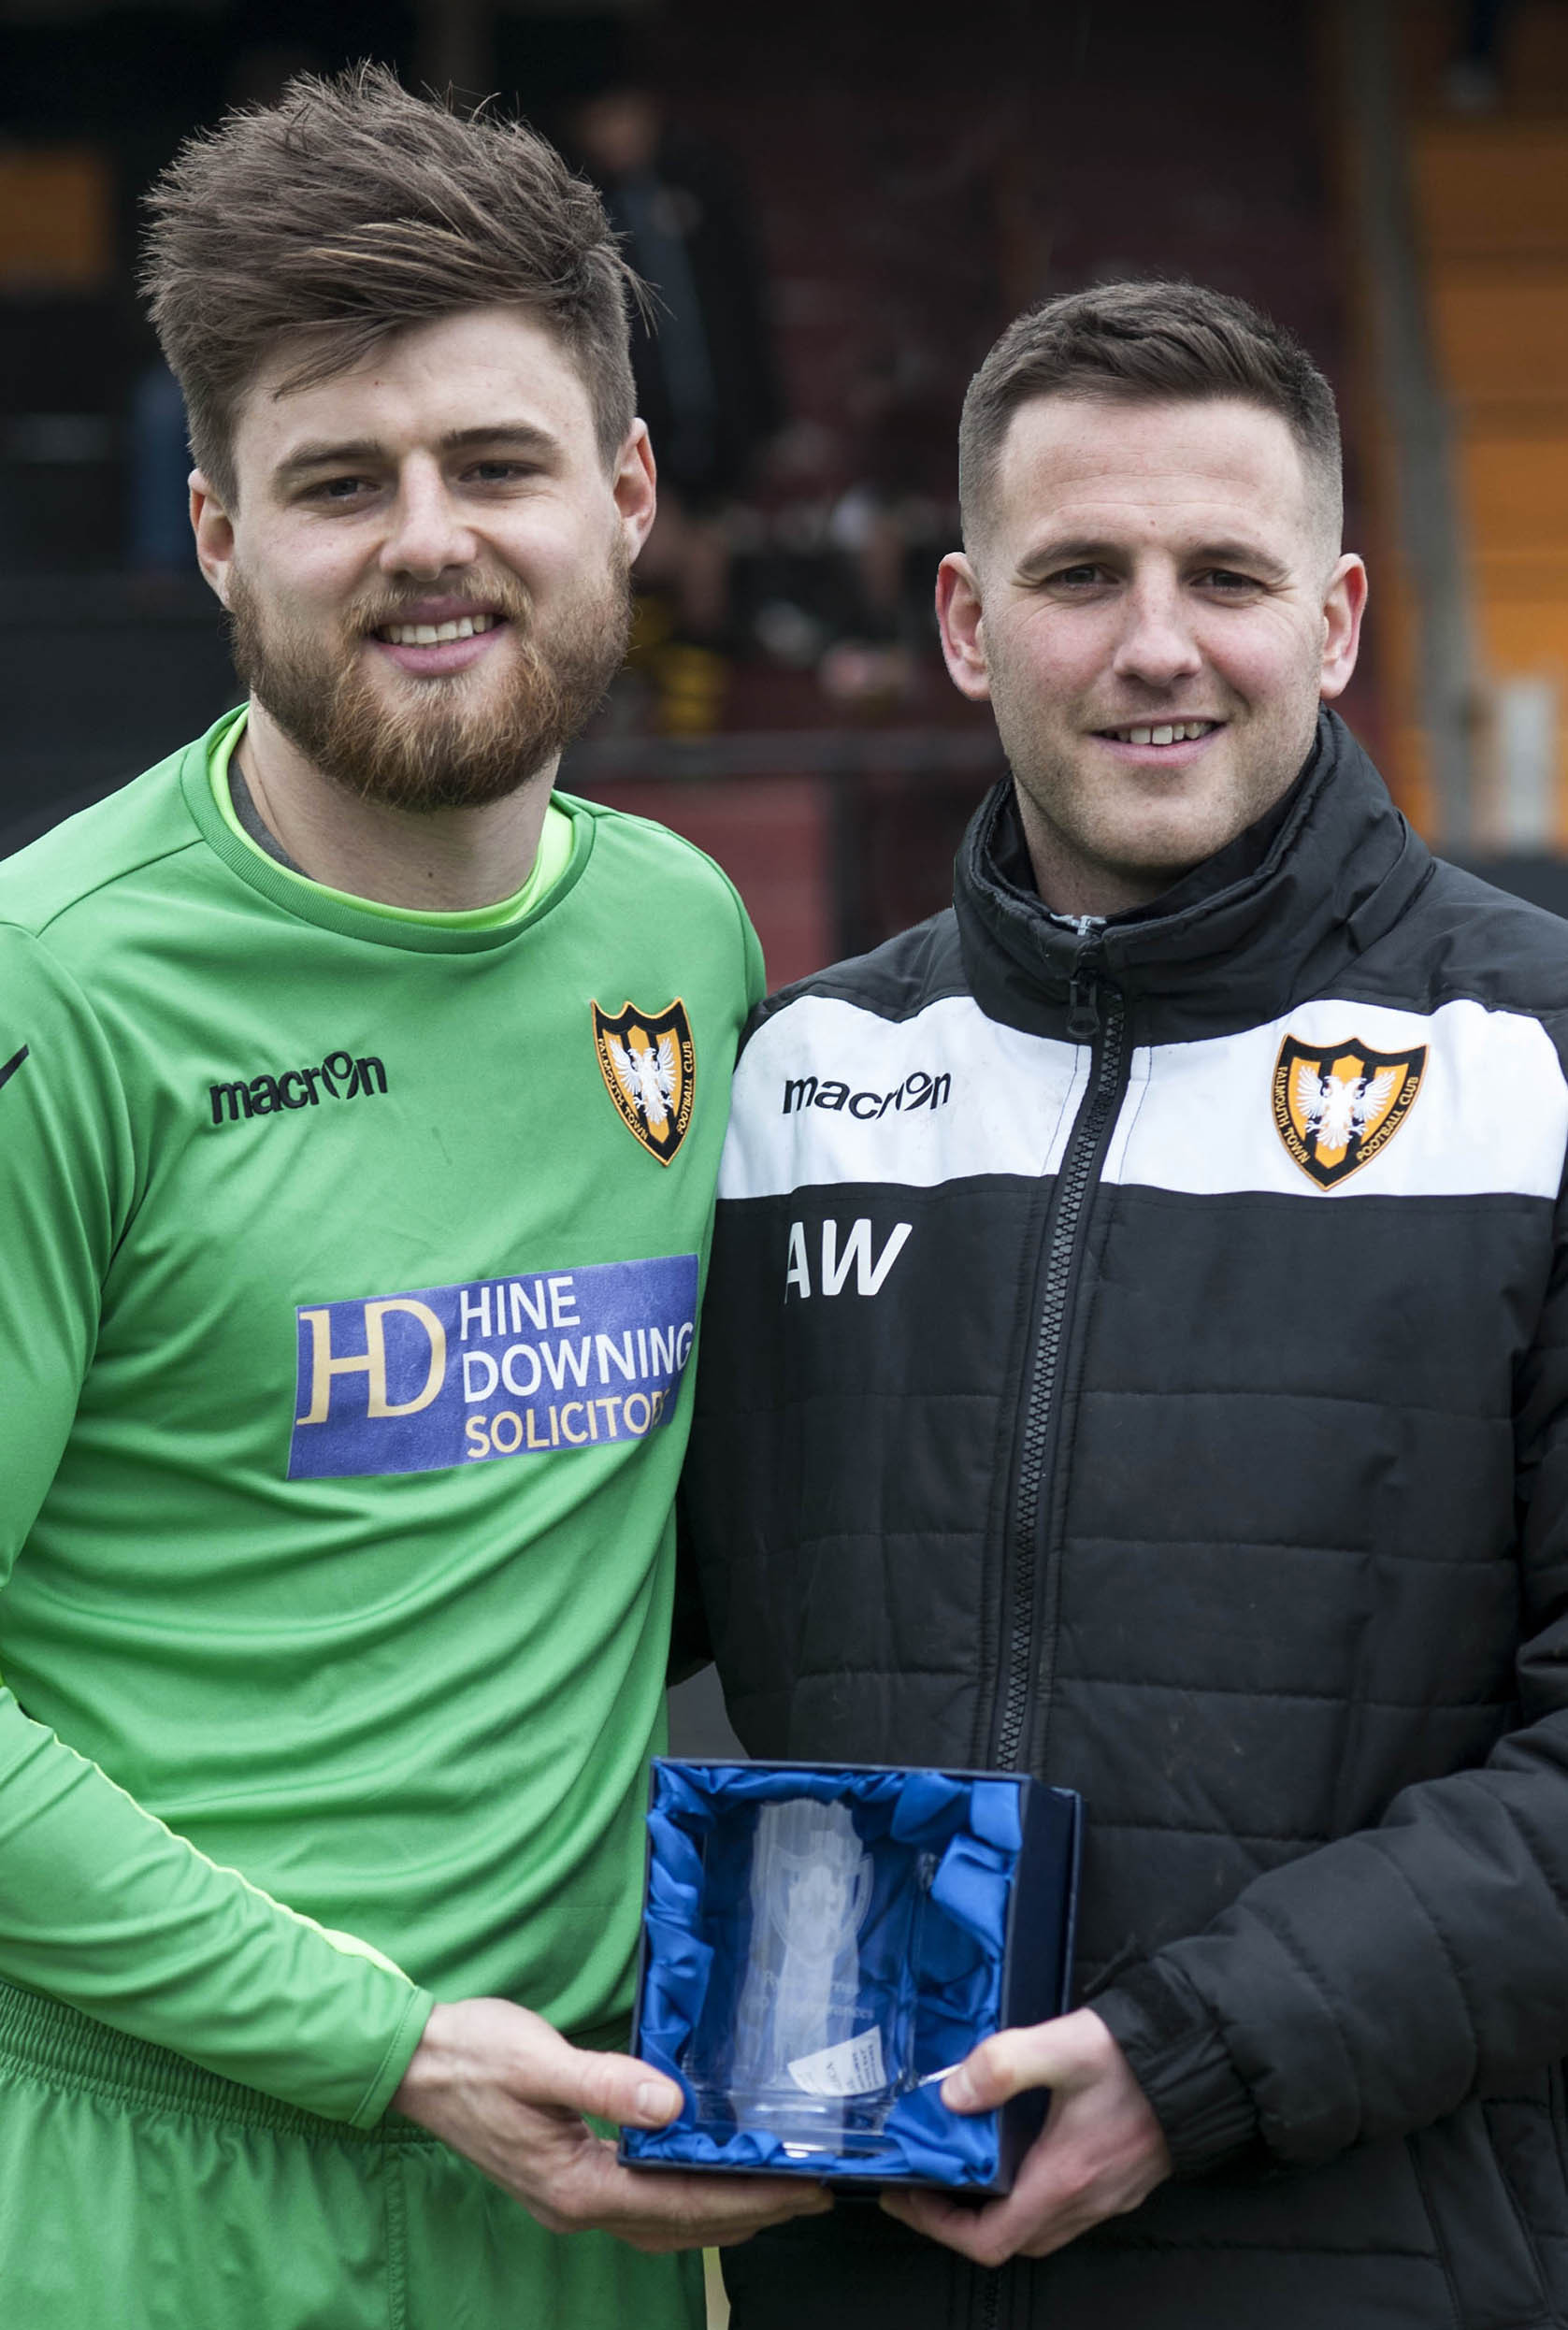 Falmouth Town manager Andrew Westgarth (right) presents an engraved tankard to goal keeper Ryan Barnes before the start of his 100th appearance for the club on Saturday. Picture by Colin Higgs